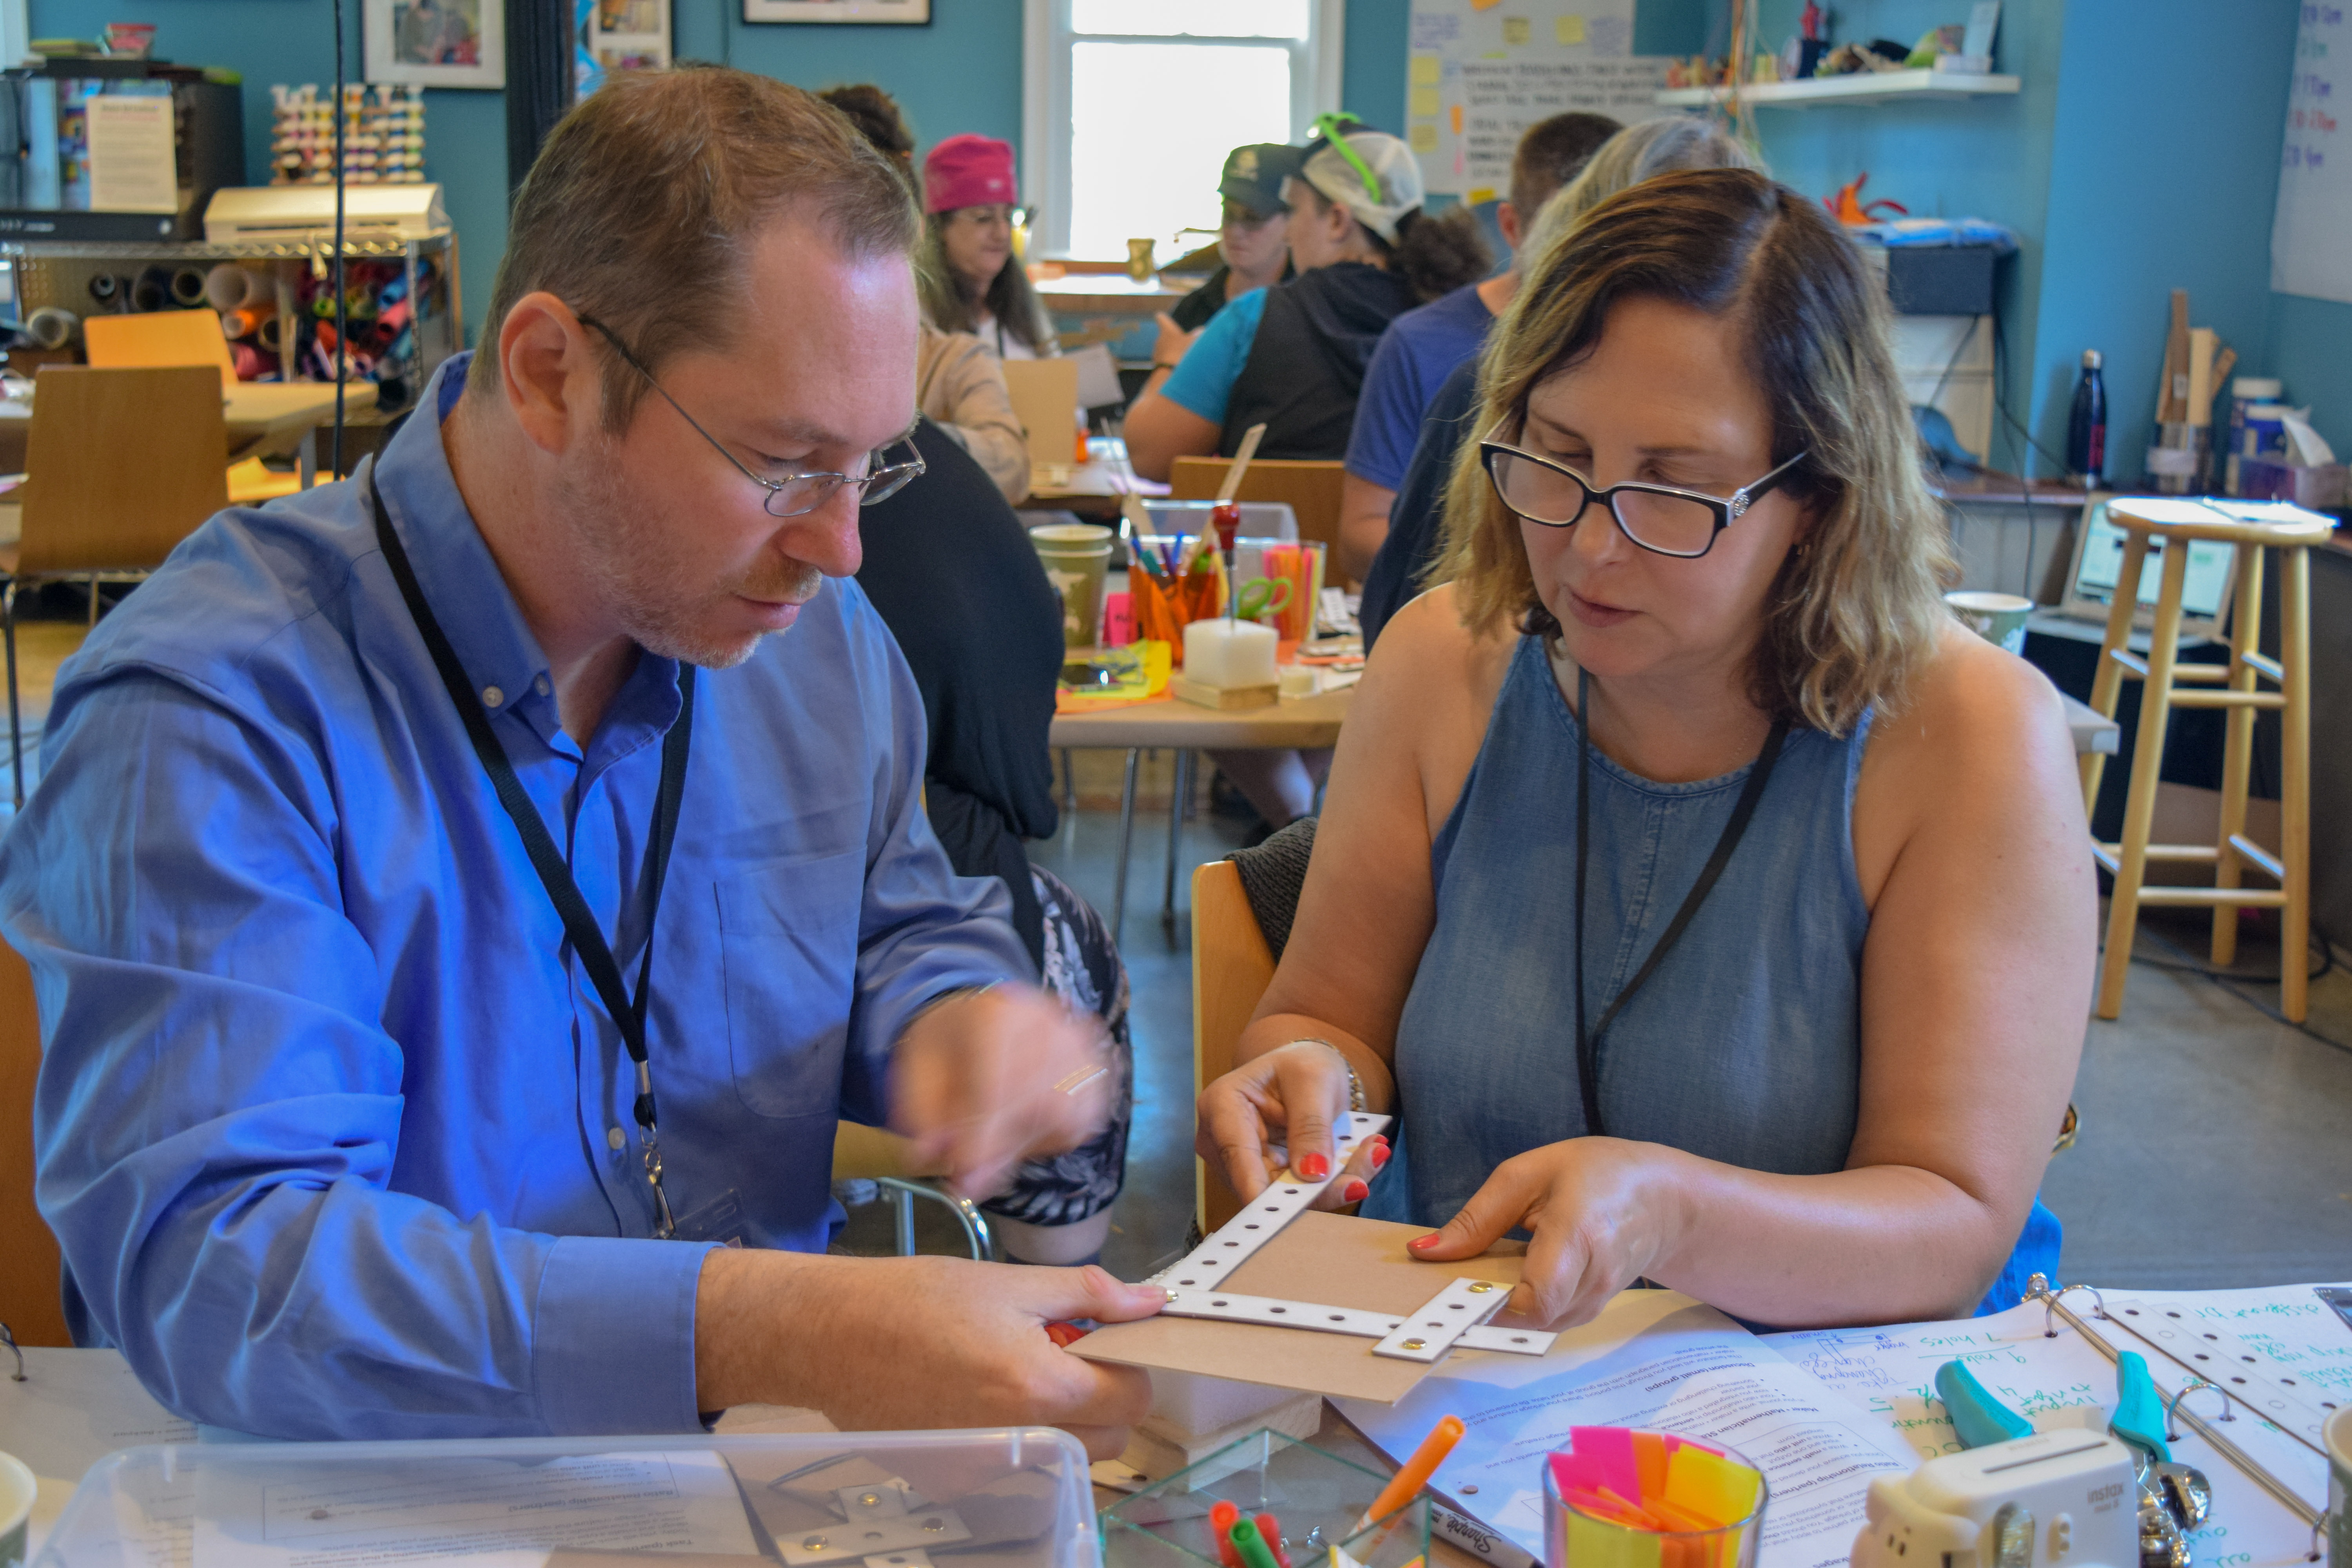 Two workshop participants, a man and a woman, examine a cardboard linkage they have created together.